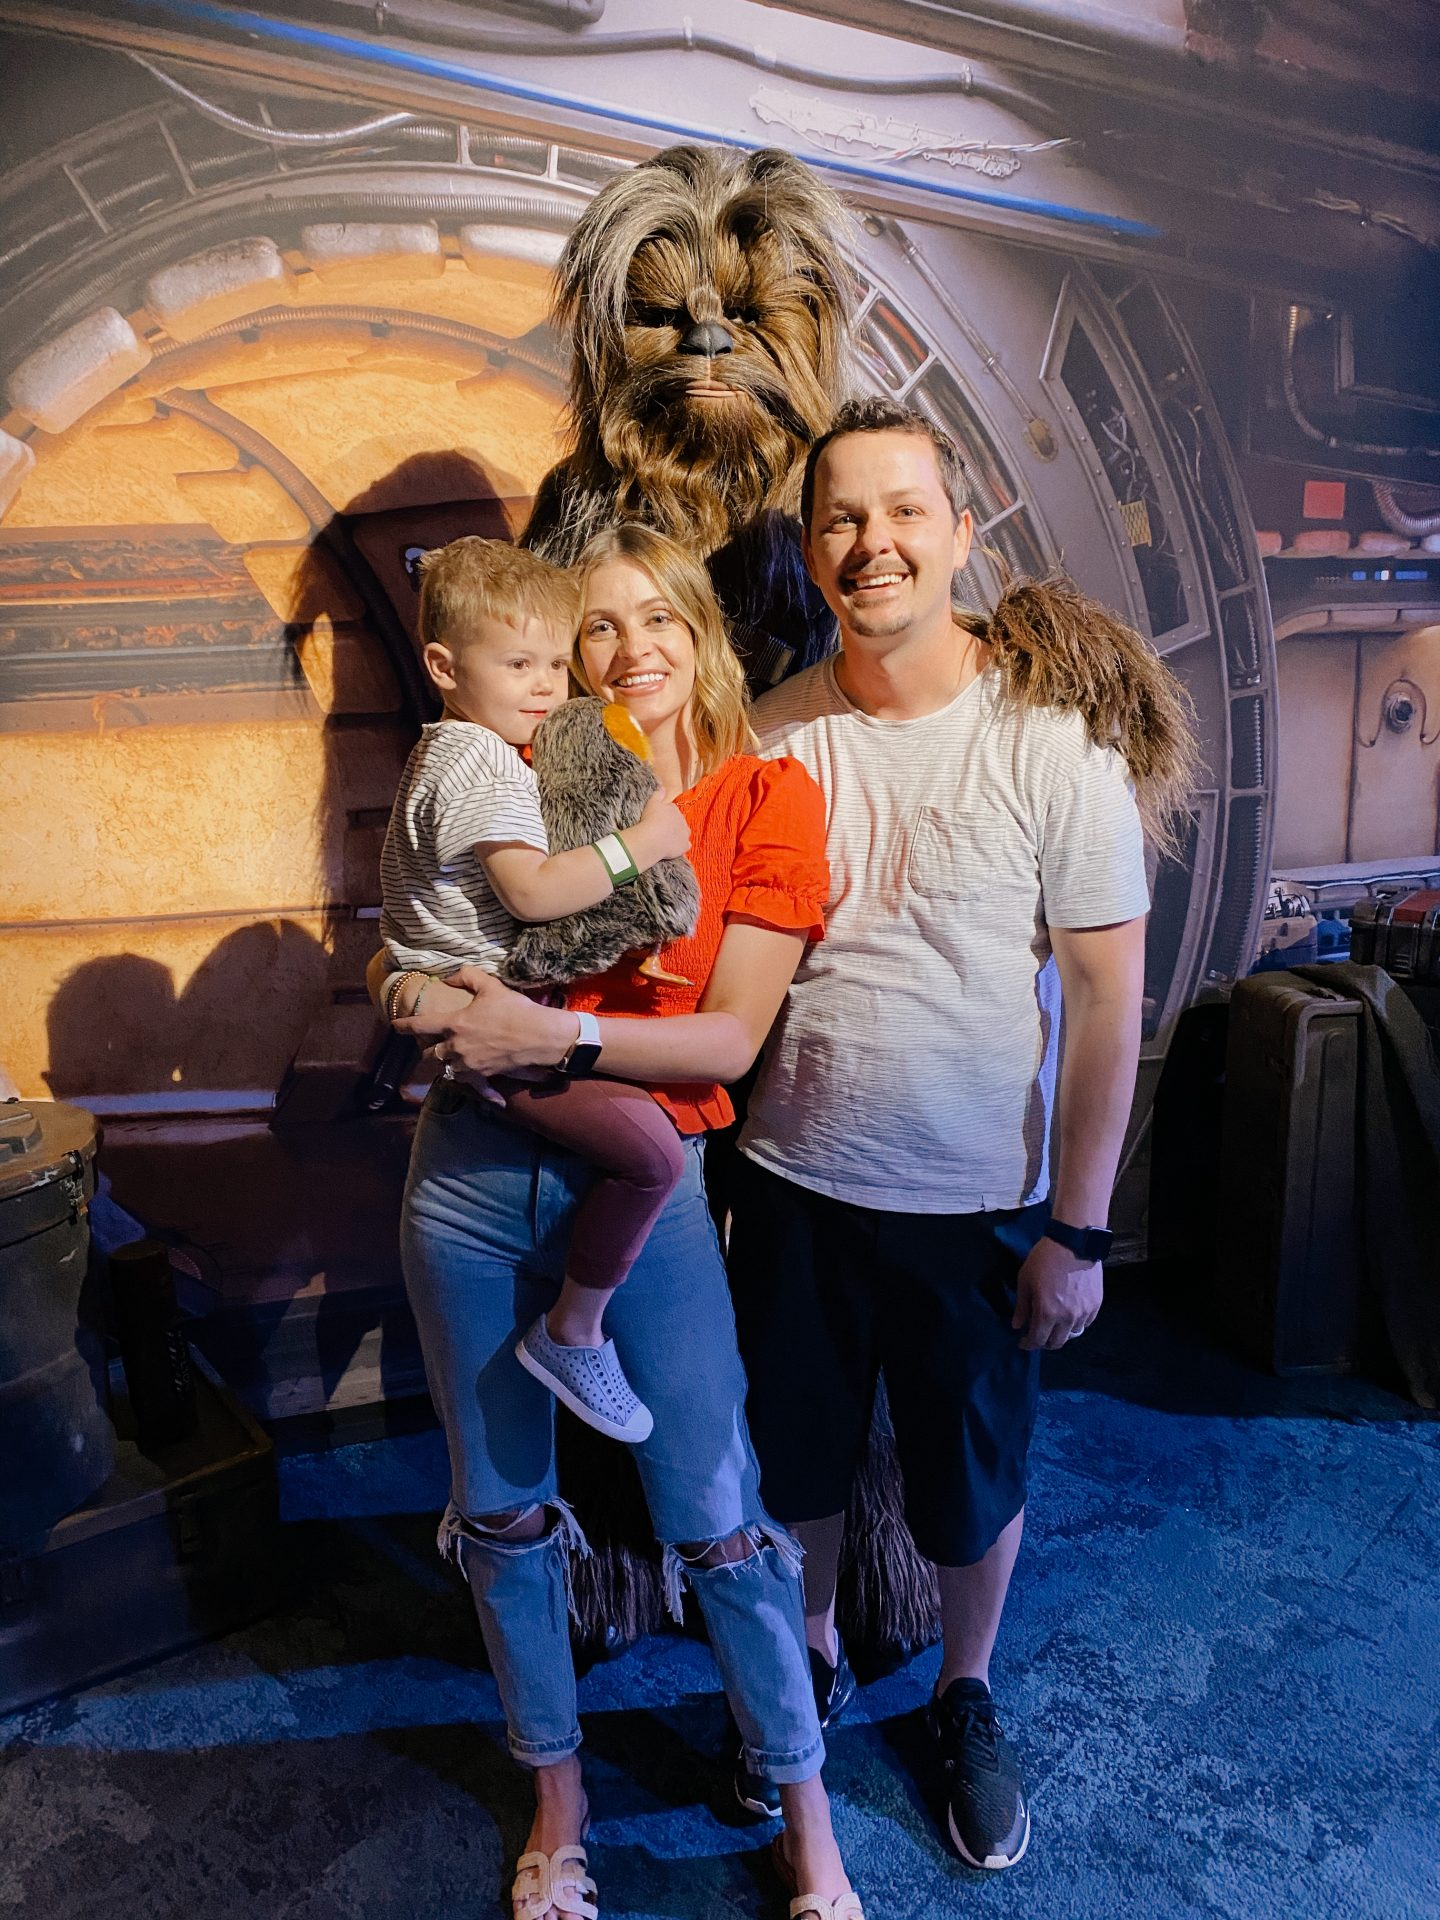 TOP 10 BEST DISNEYLAND TIPS FOR YOUR FAMILY featured by top San Diego blog, Navy Grace | Disneyland Tips by popular San Diego lifestyle blog, Navy Grace: image of mom, dad and their son standing with Chewbacca at Disneyland.